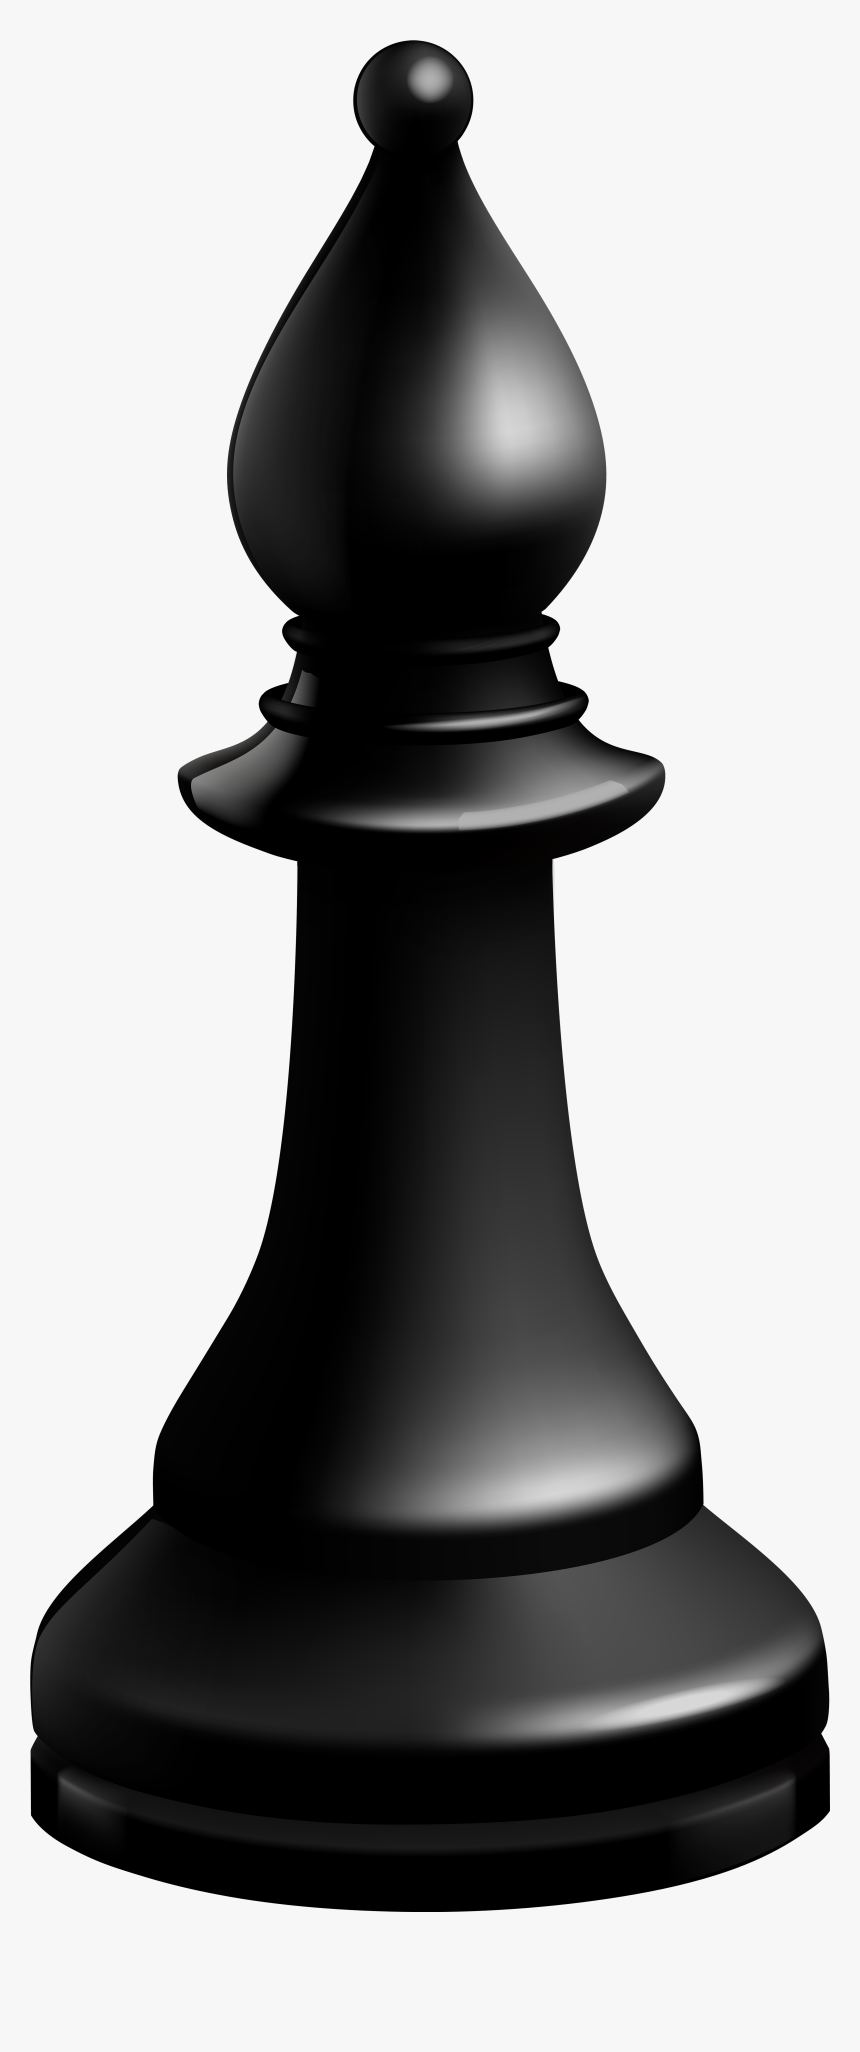 Bishop Black Chess Piece Png Clip Art - Chess, Transparent Png, Free Download